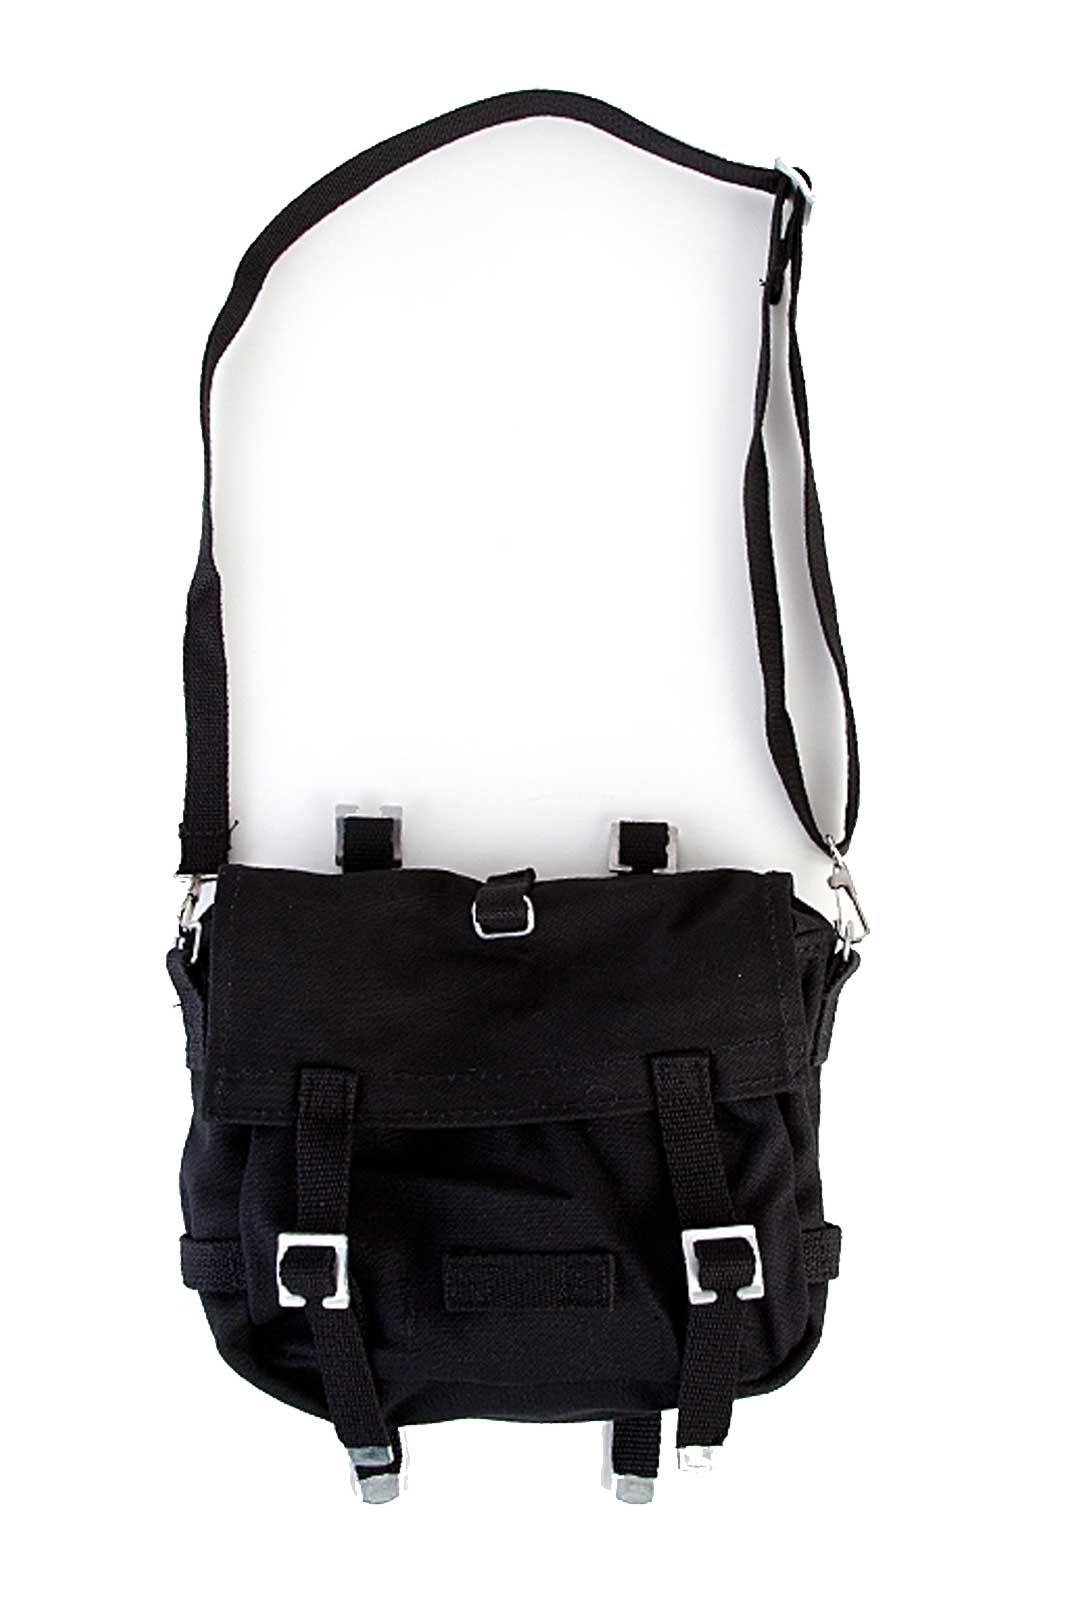 mfh int comp bw combat bag small black